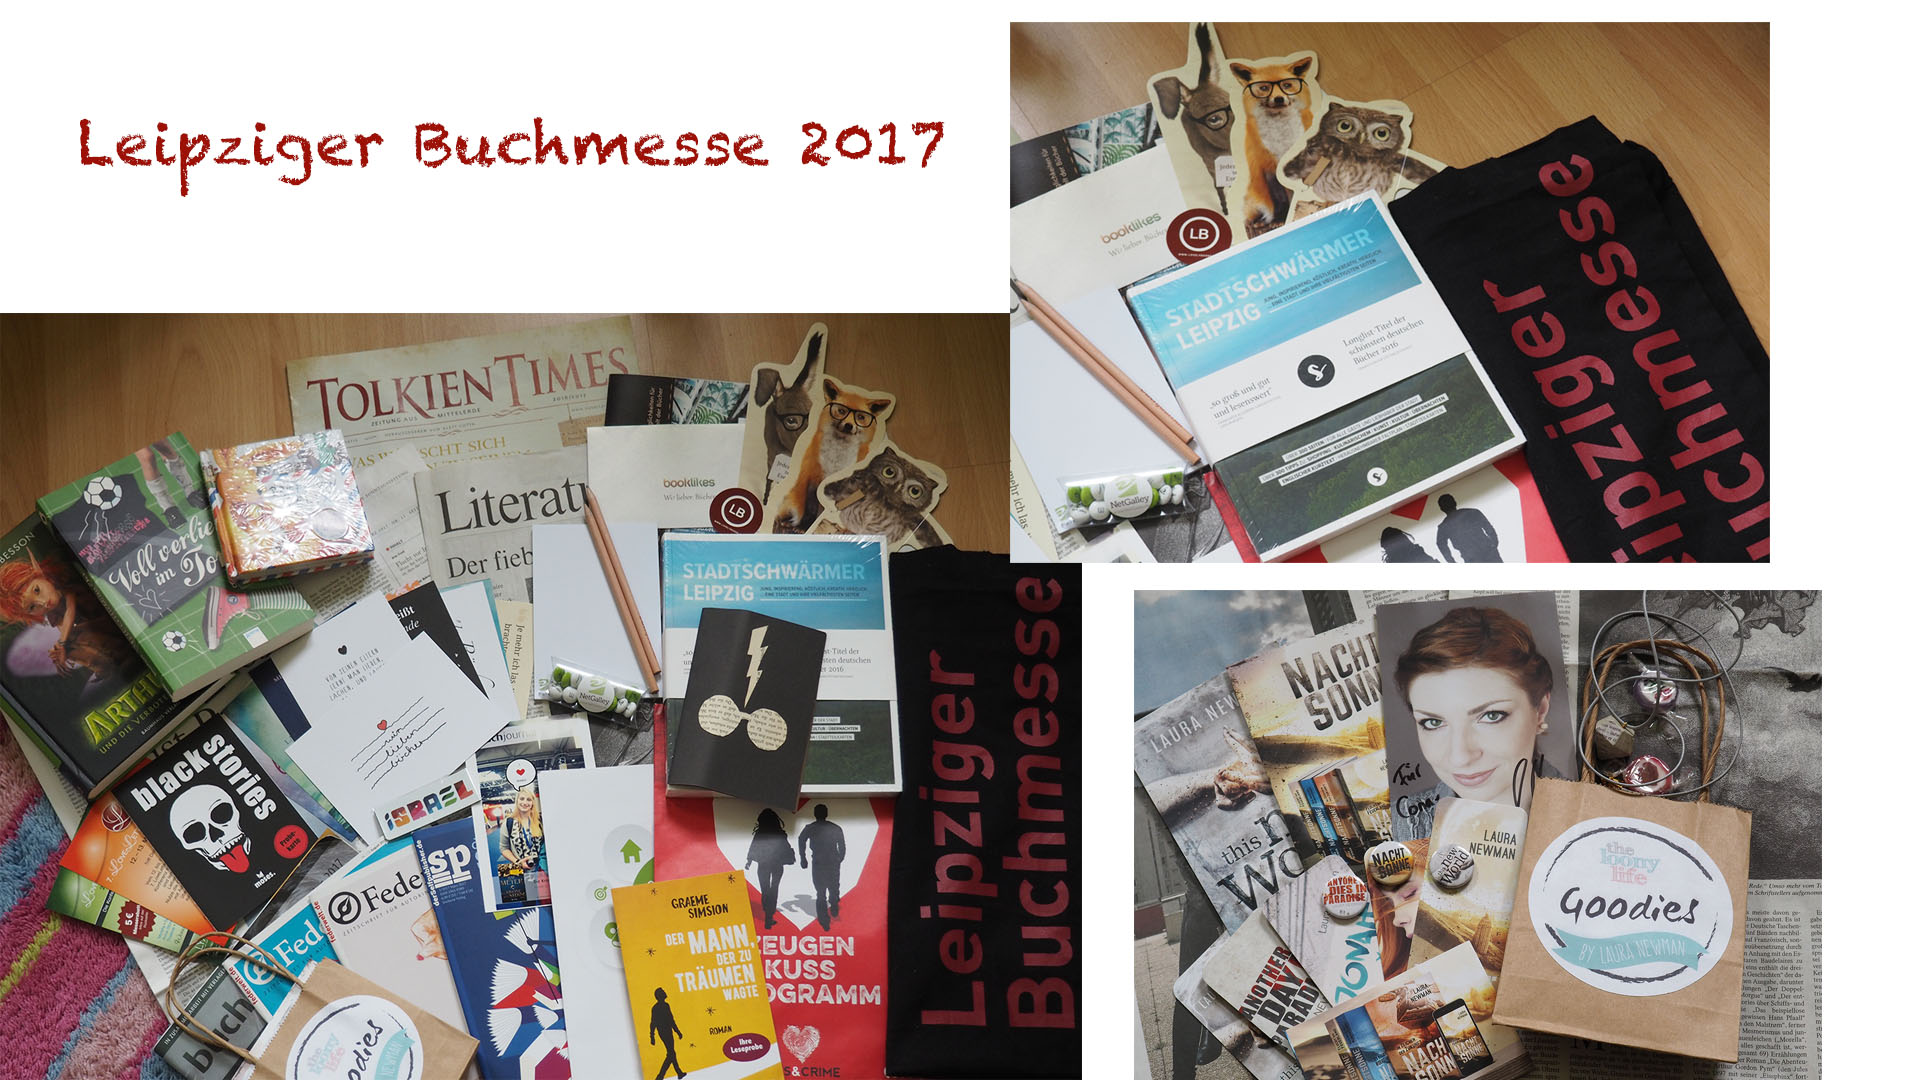 Goodies Leipziger Buchmesse